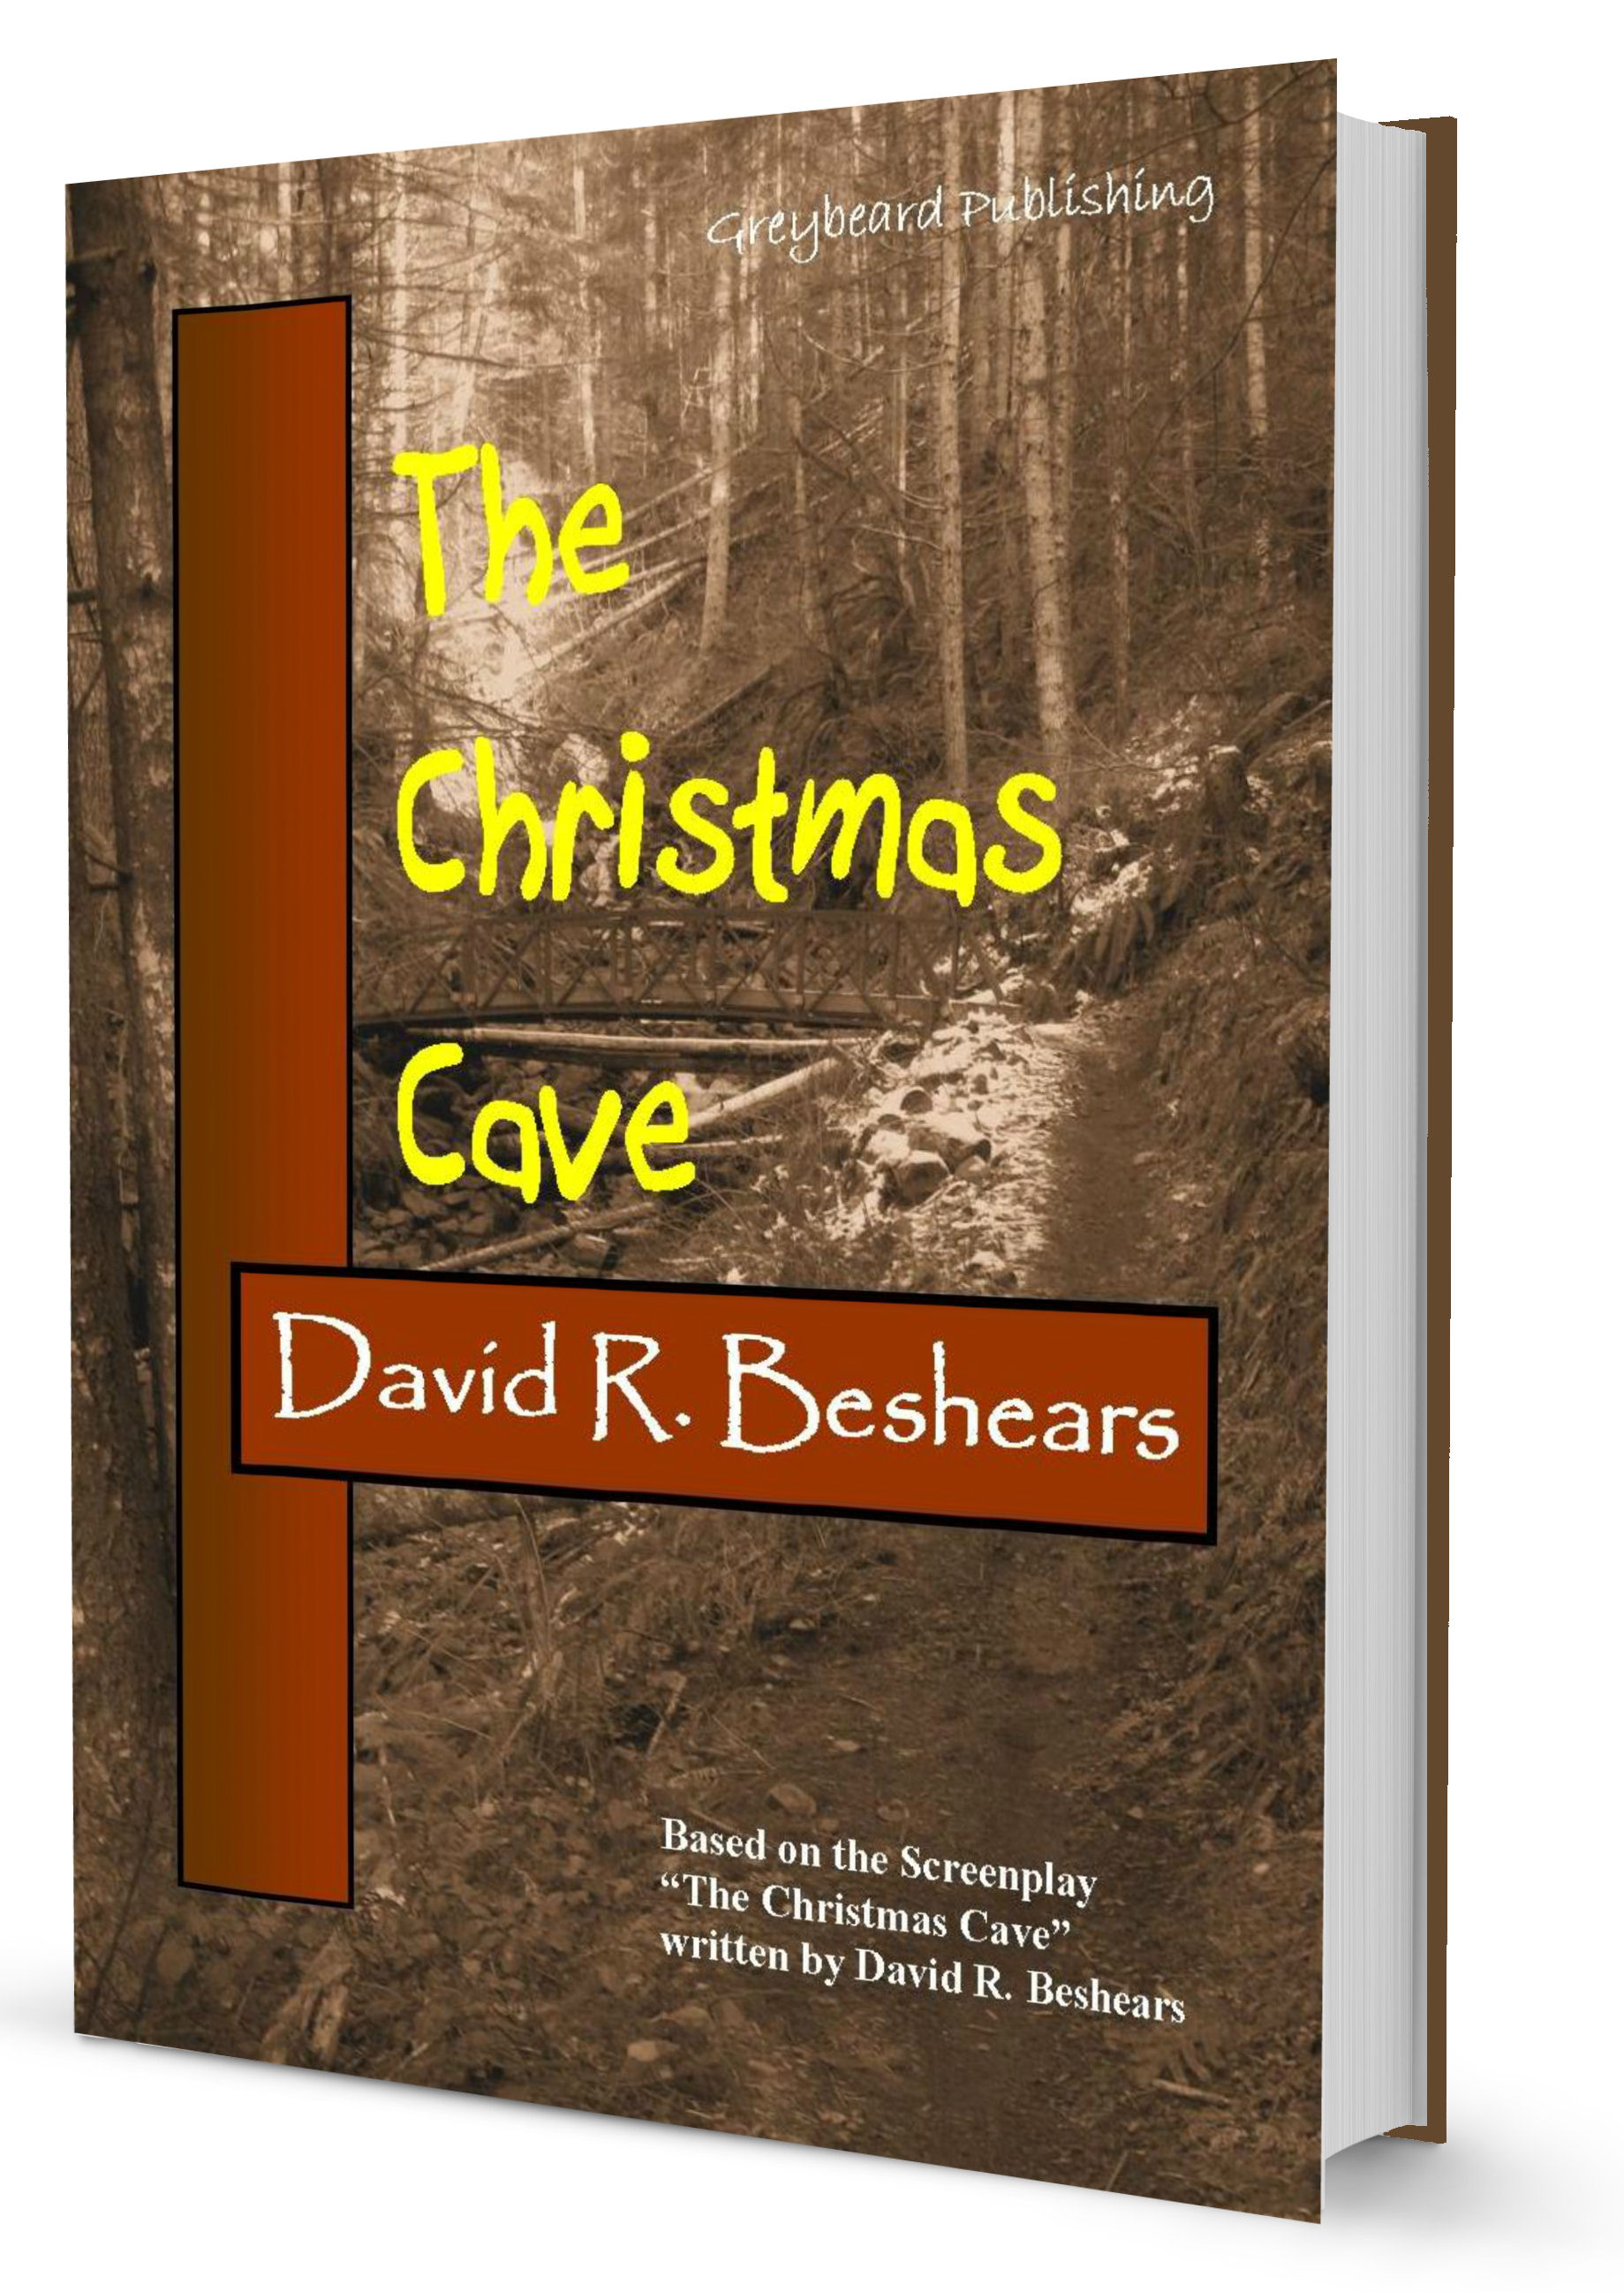 TheChristmasCave